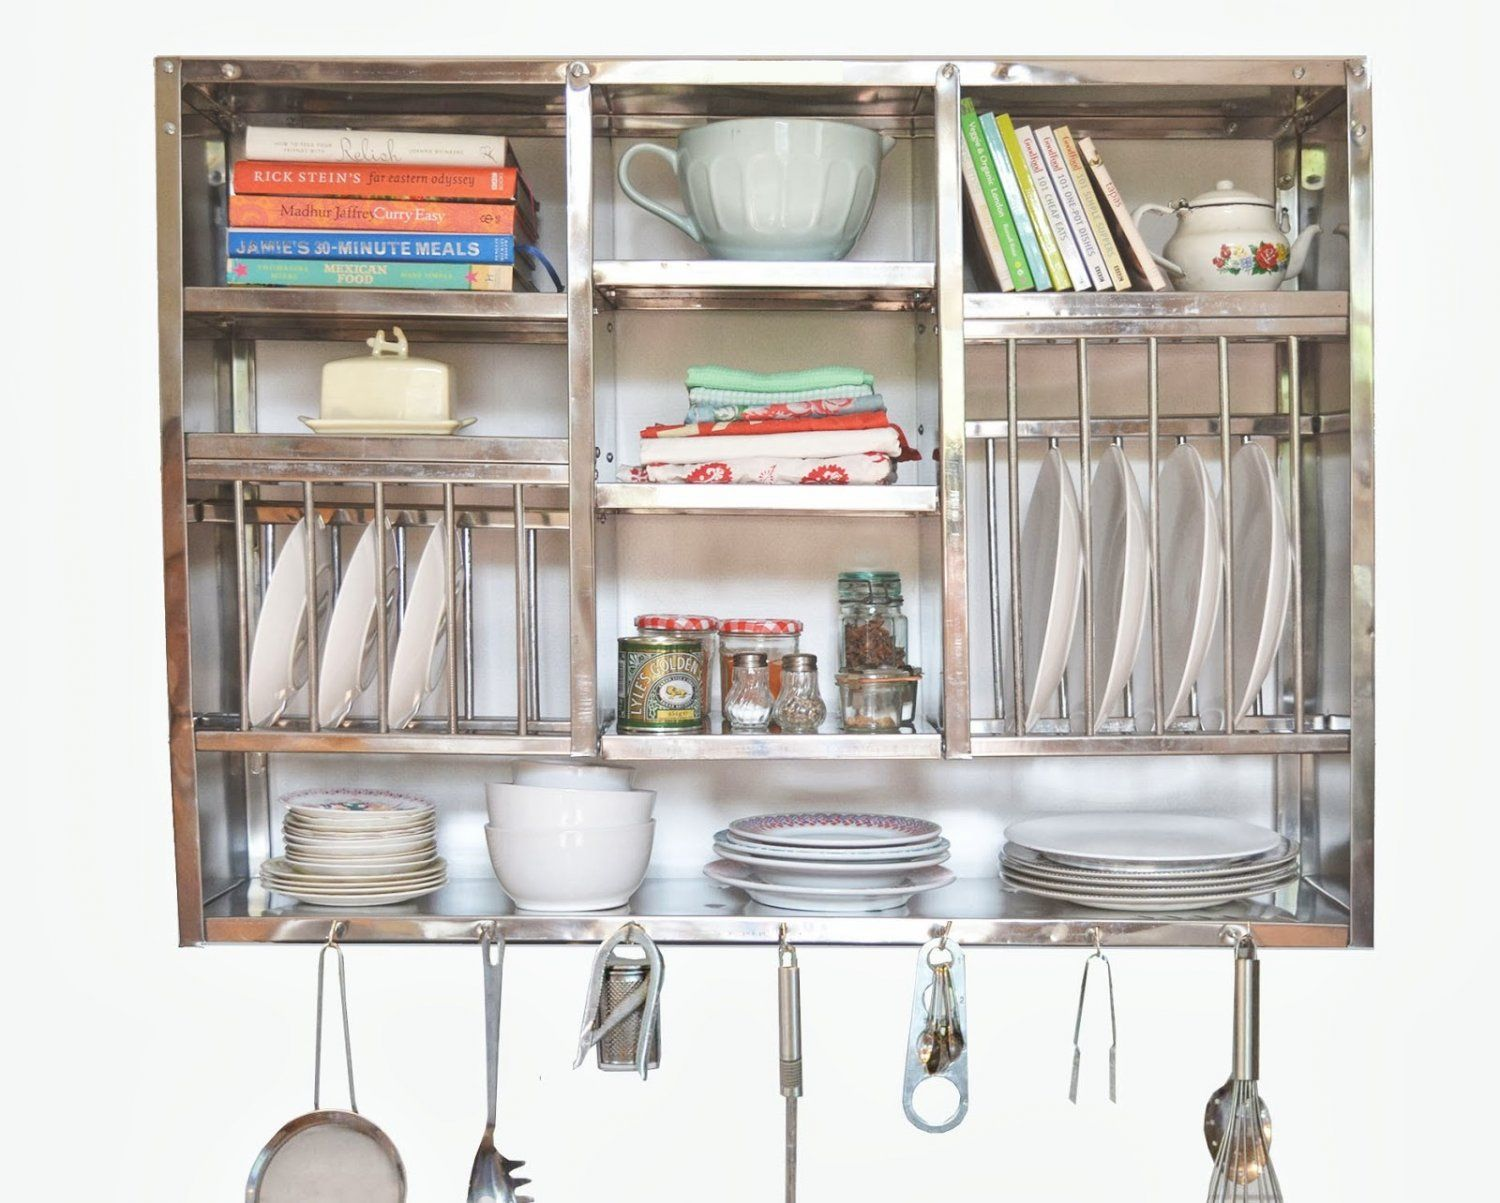 Stainless Steel Kitchen Plate Rack  Wall Hanging